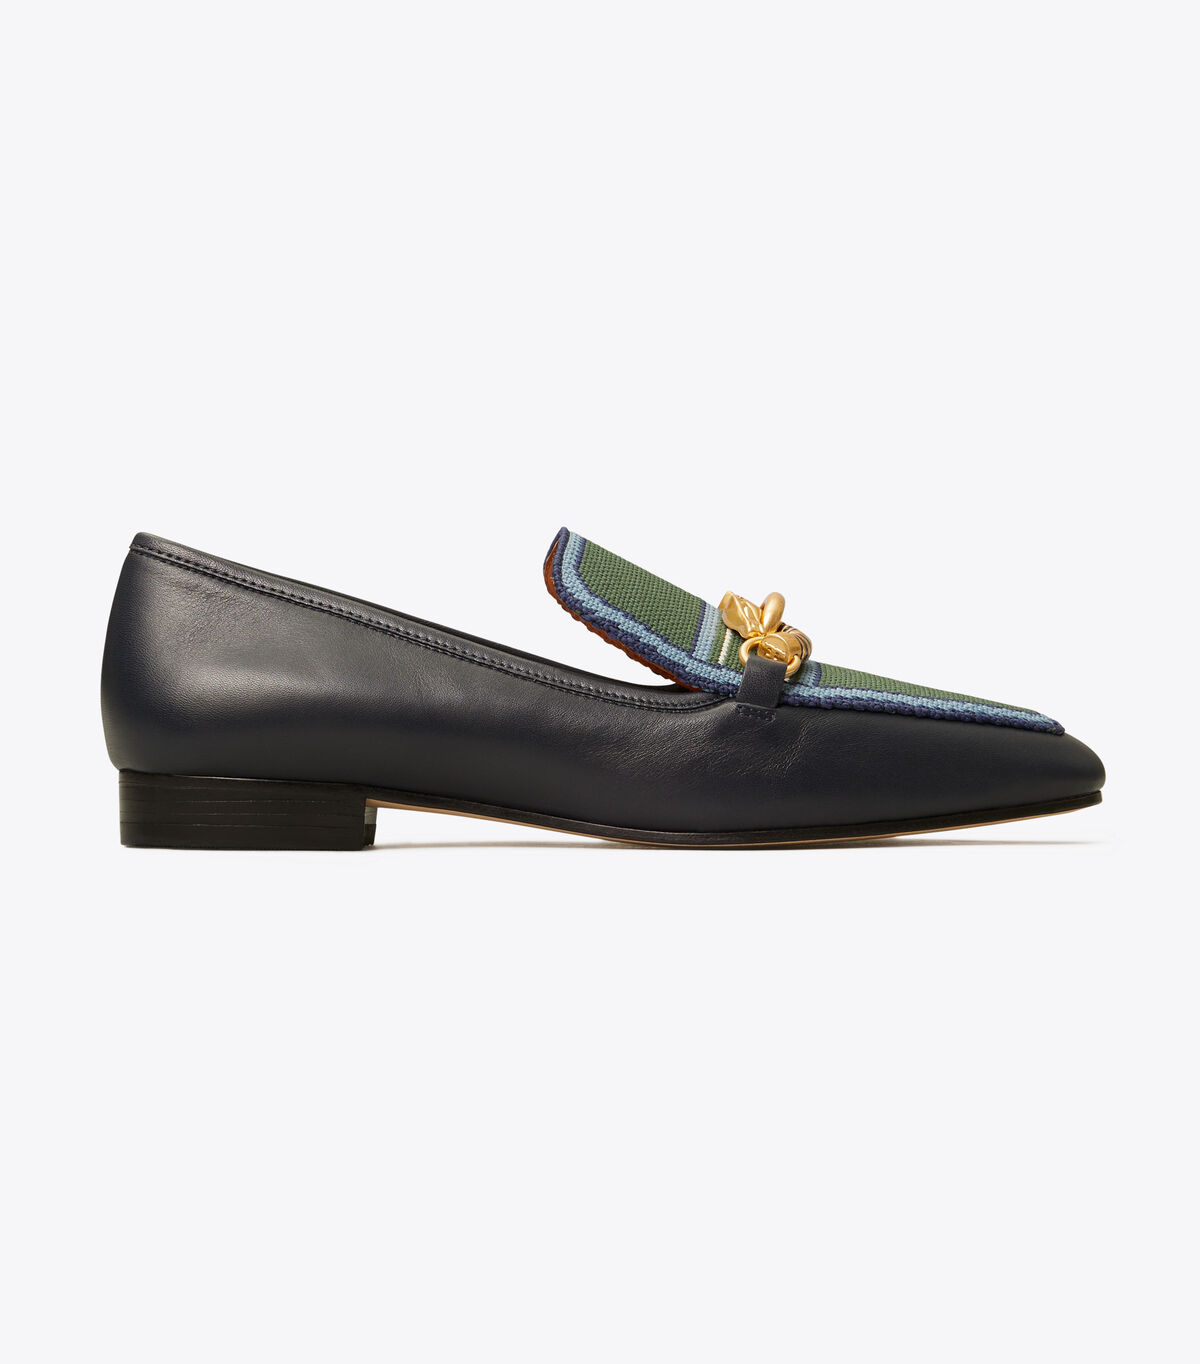 JESSA 20MM LOAFER | 442 | Loafers/Drivers/Smoking Slippers